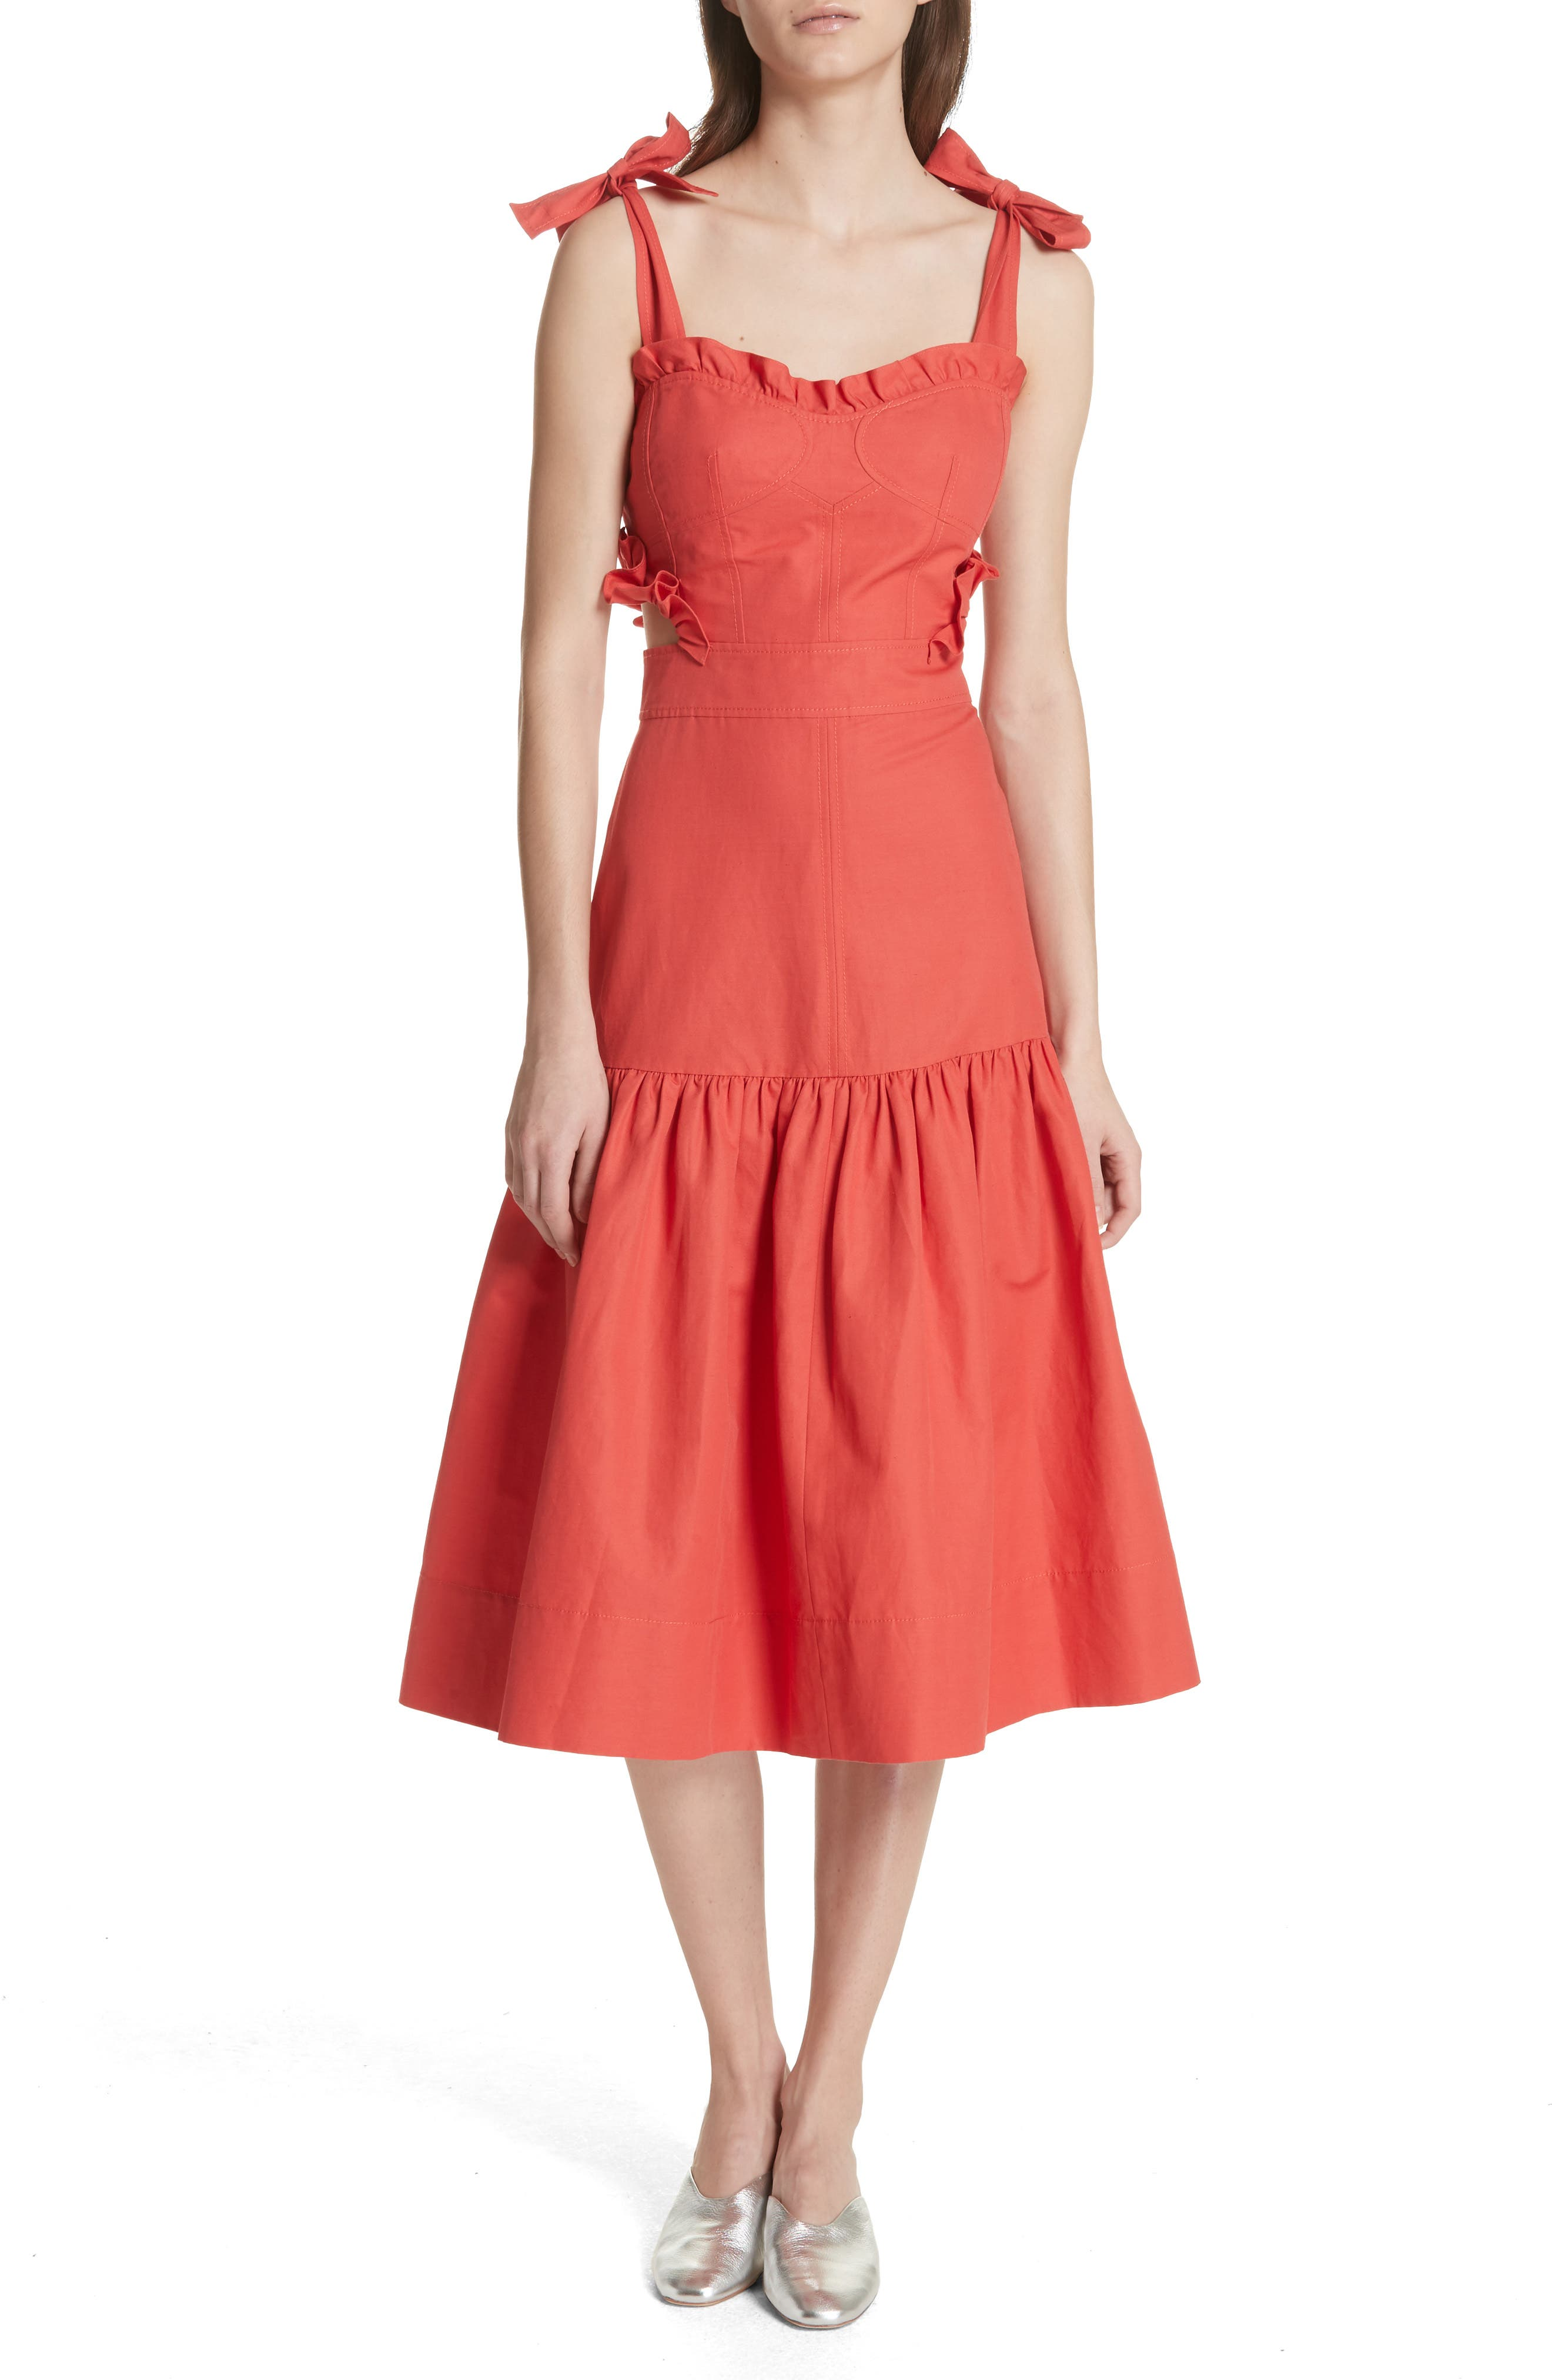 Alternate Image 1 Selected - Rebecca Taylor Sleeveless Ruffle Hem Dress